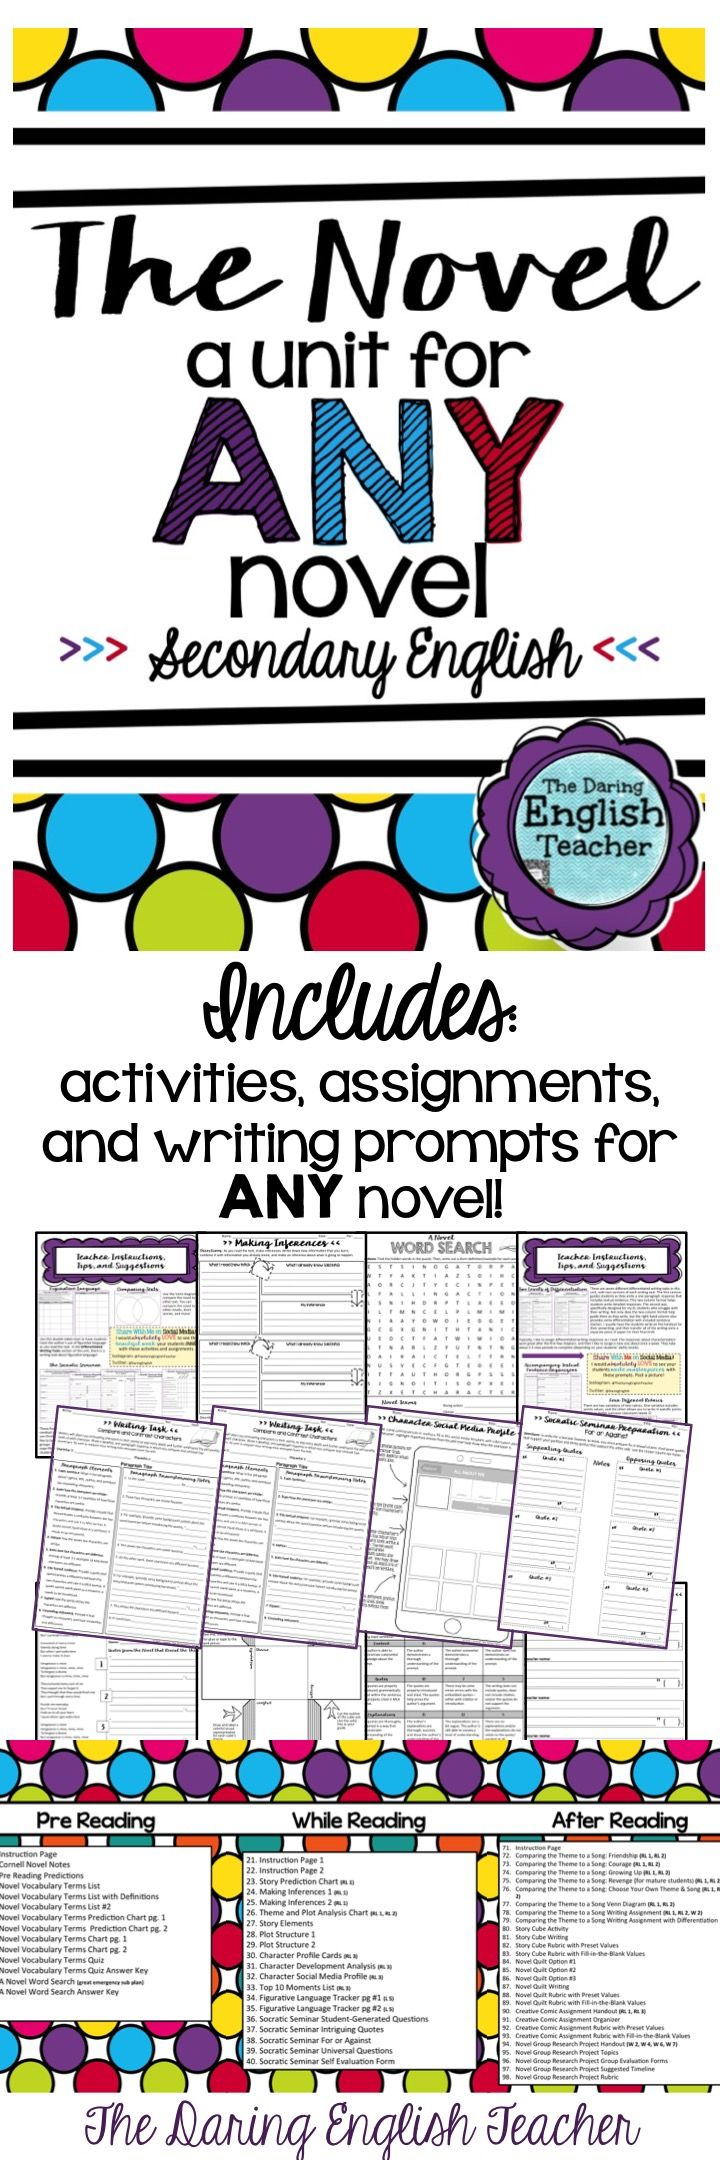 Teach ANY novel to your secondary students with this unit! It includes activities, assignments, and writing prompts that can be used with any novel!